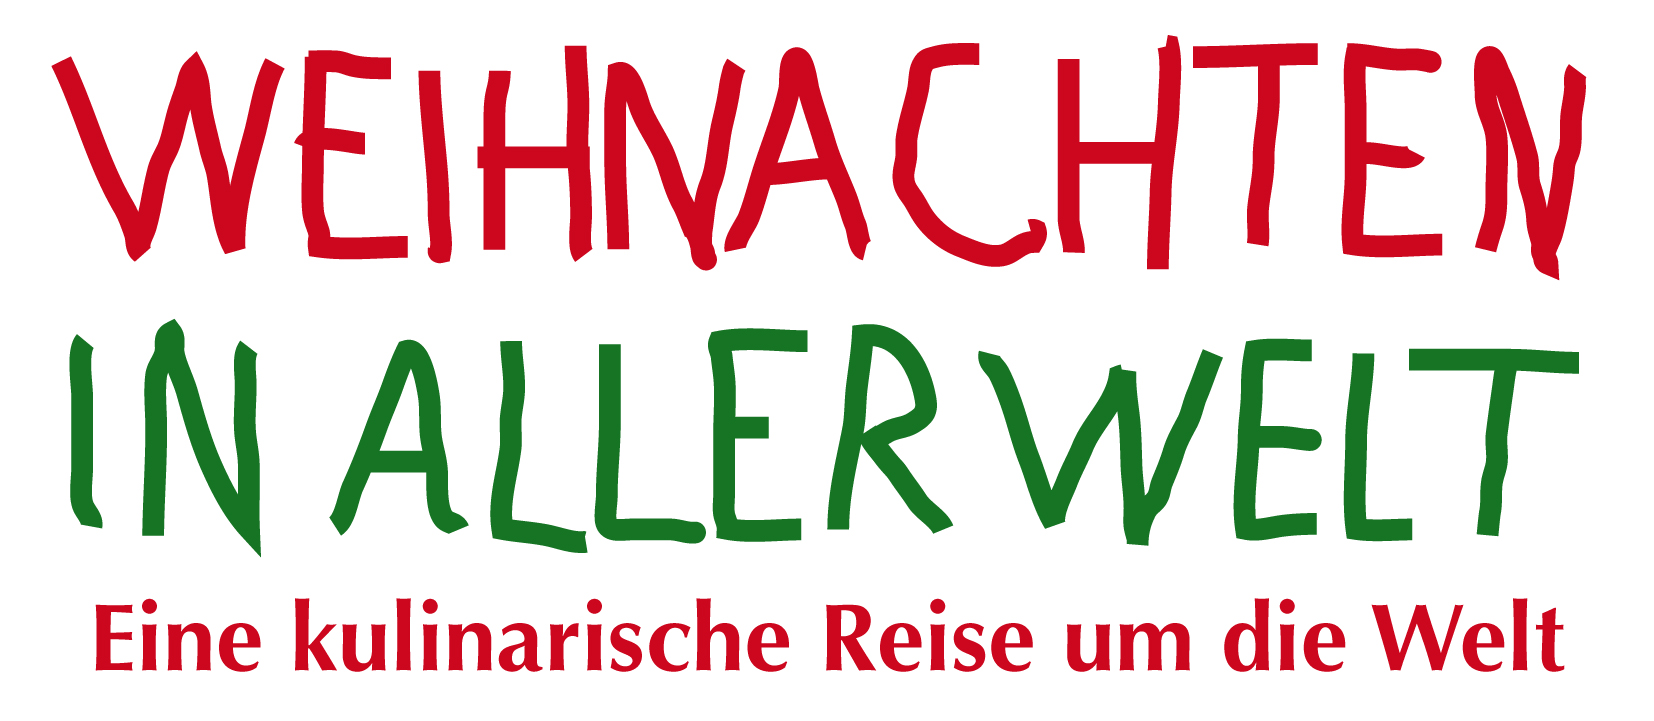 Il Cielo Weihnachtsreise